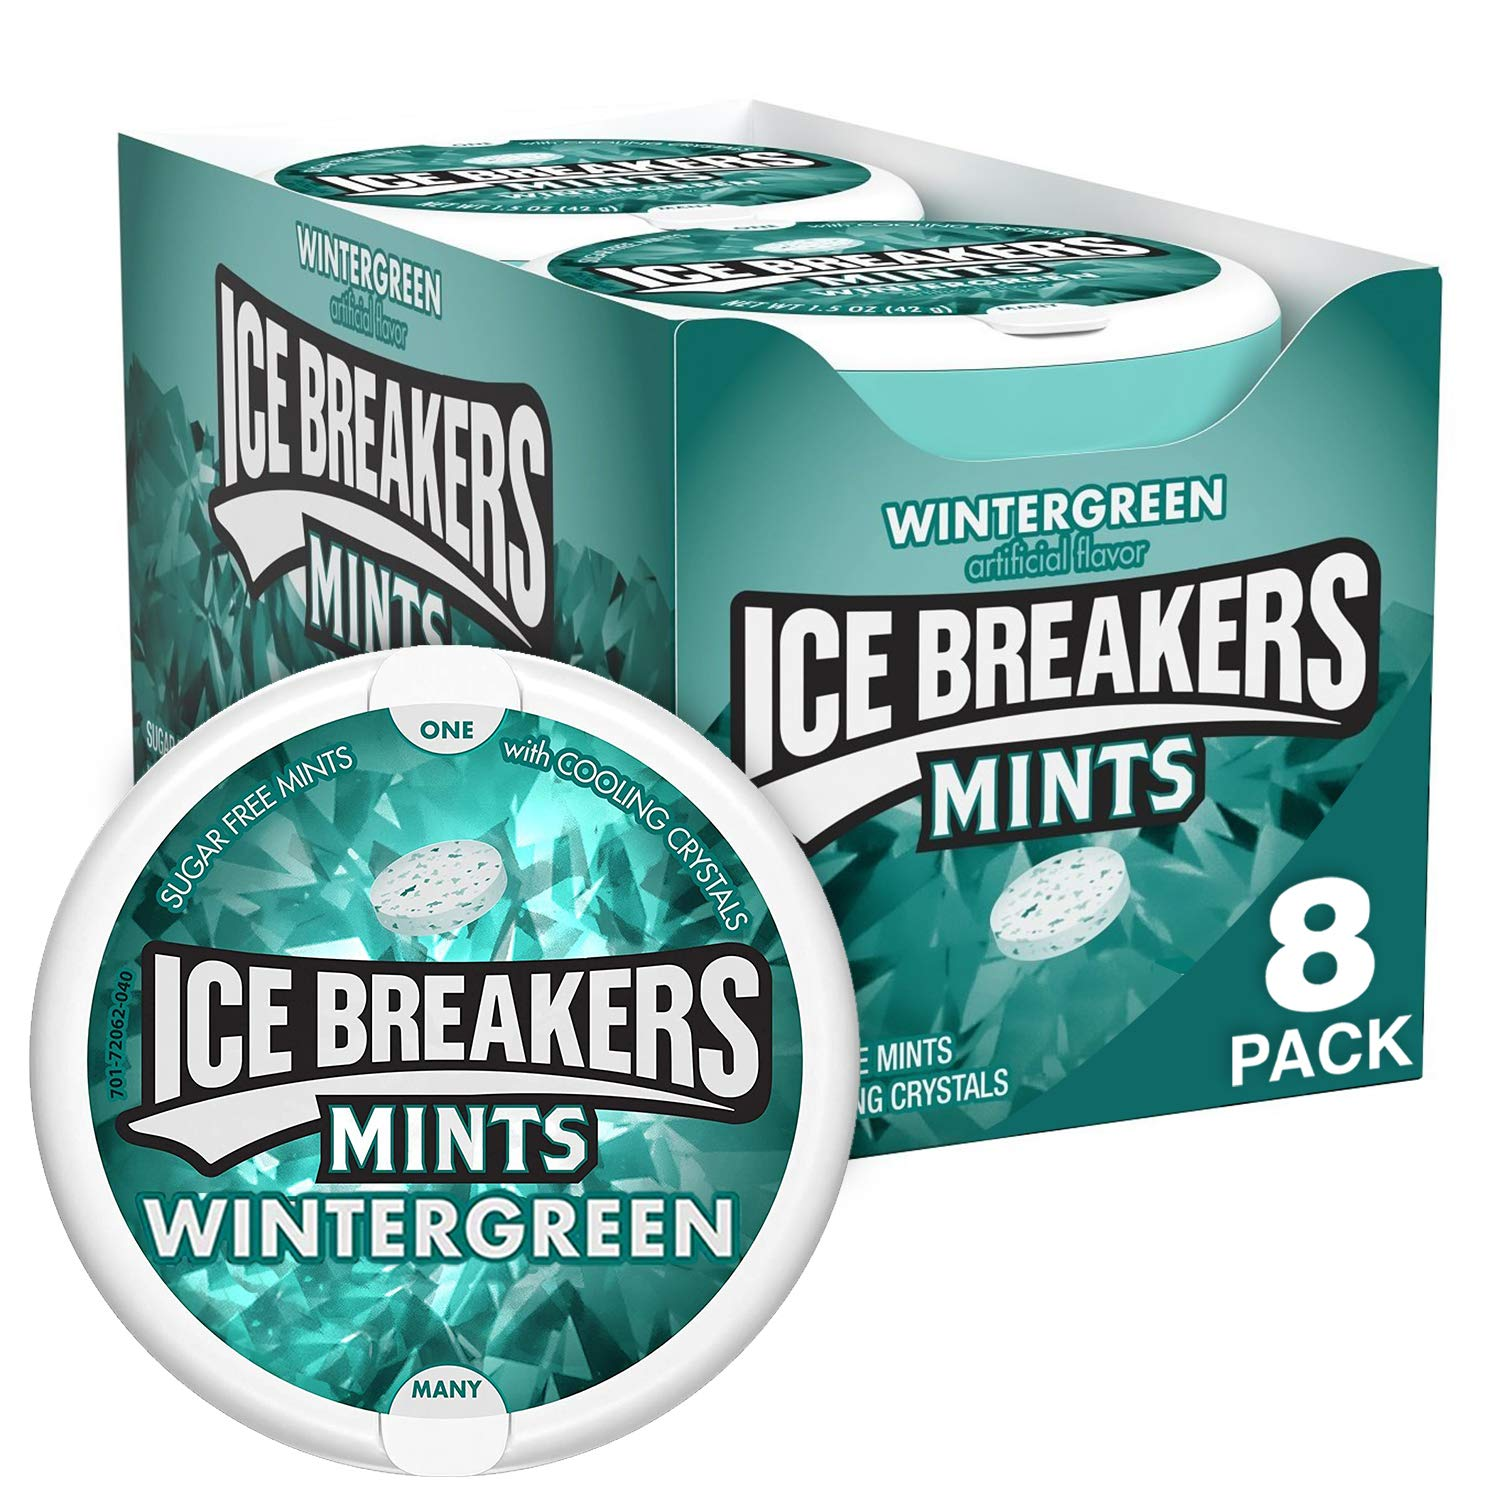 8-Count 1.5oz. Ice Breakers Sugar Free Mints (Wintergreen)